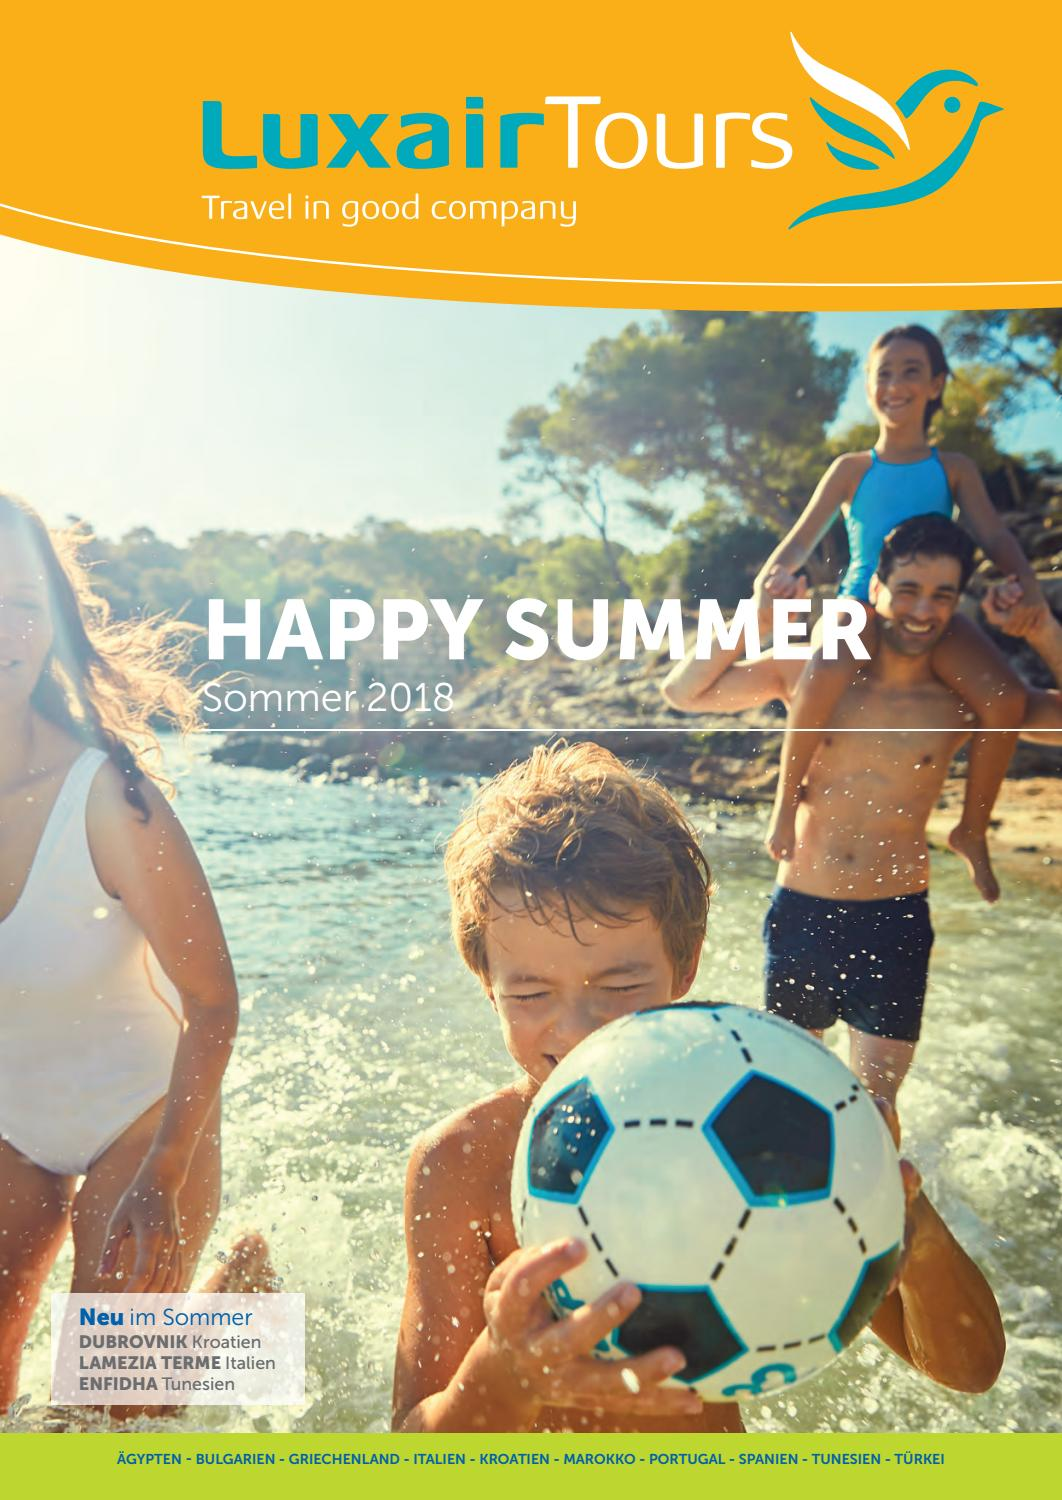 Luxairtours Happy Summer by WLTT s.a. - issuu